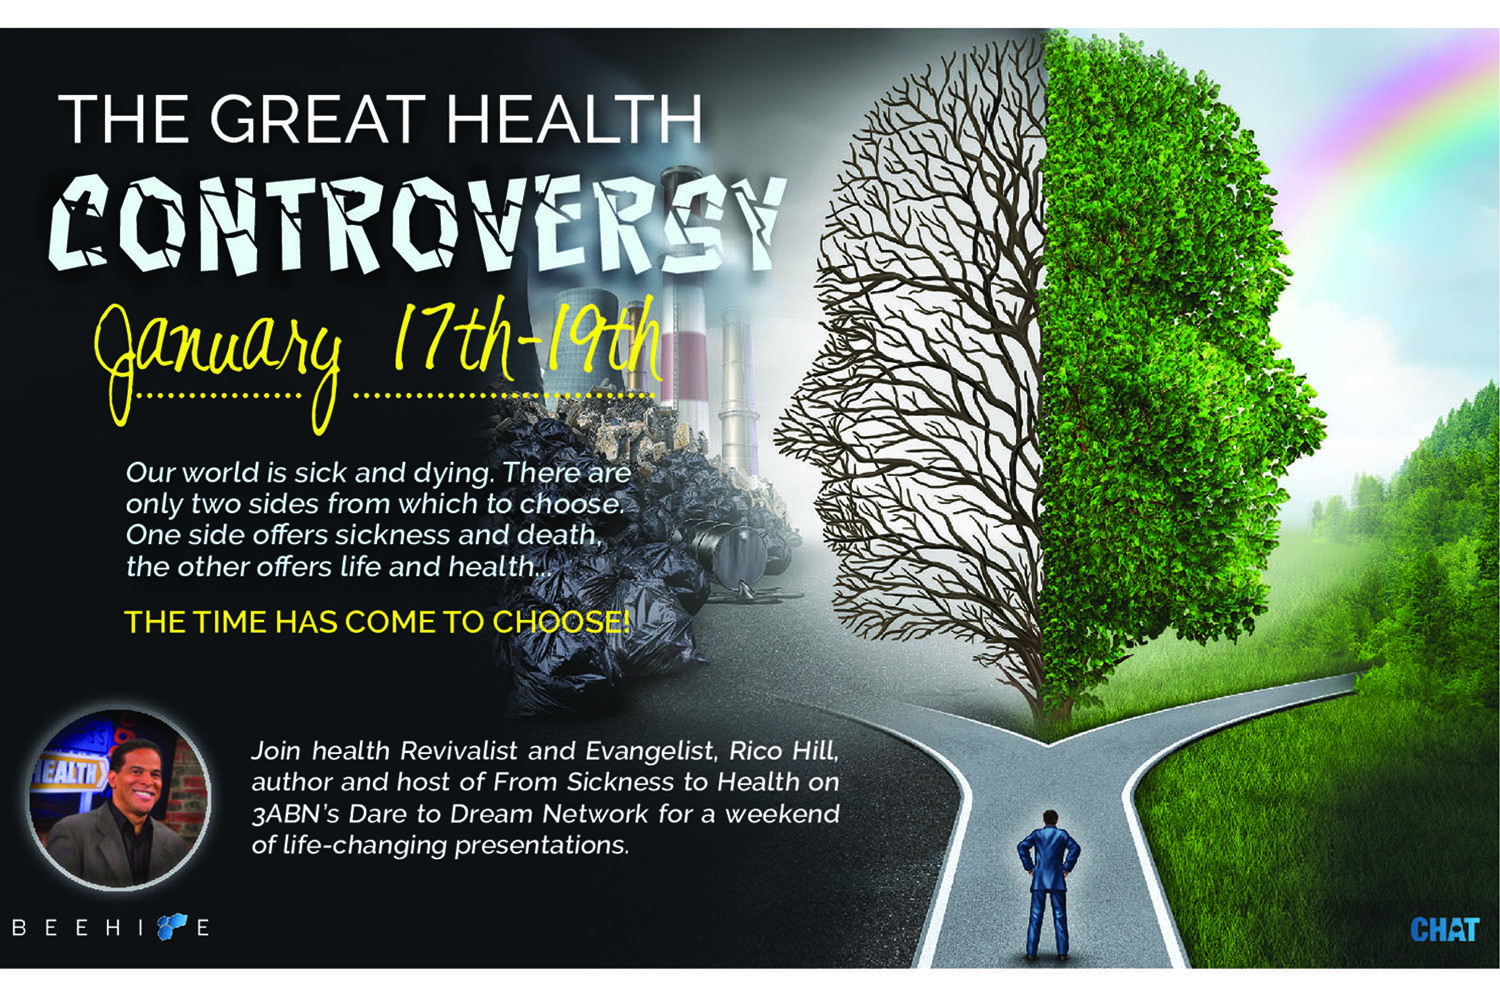 The Great Health Controversy in Hillsboro